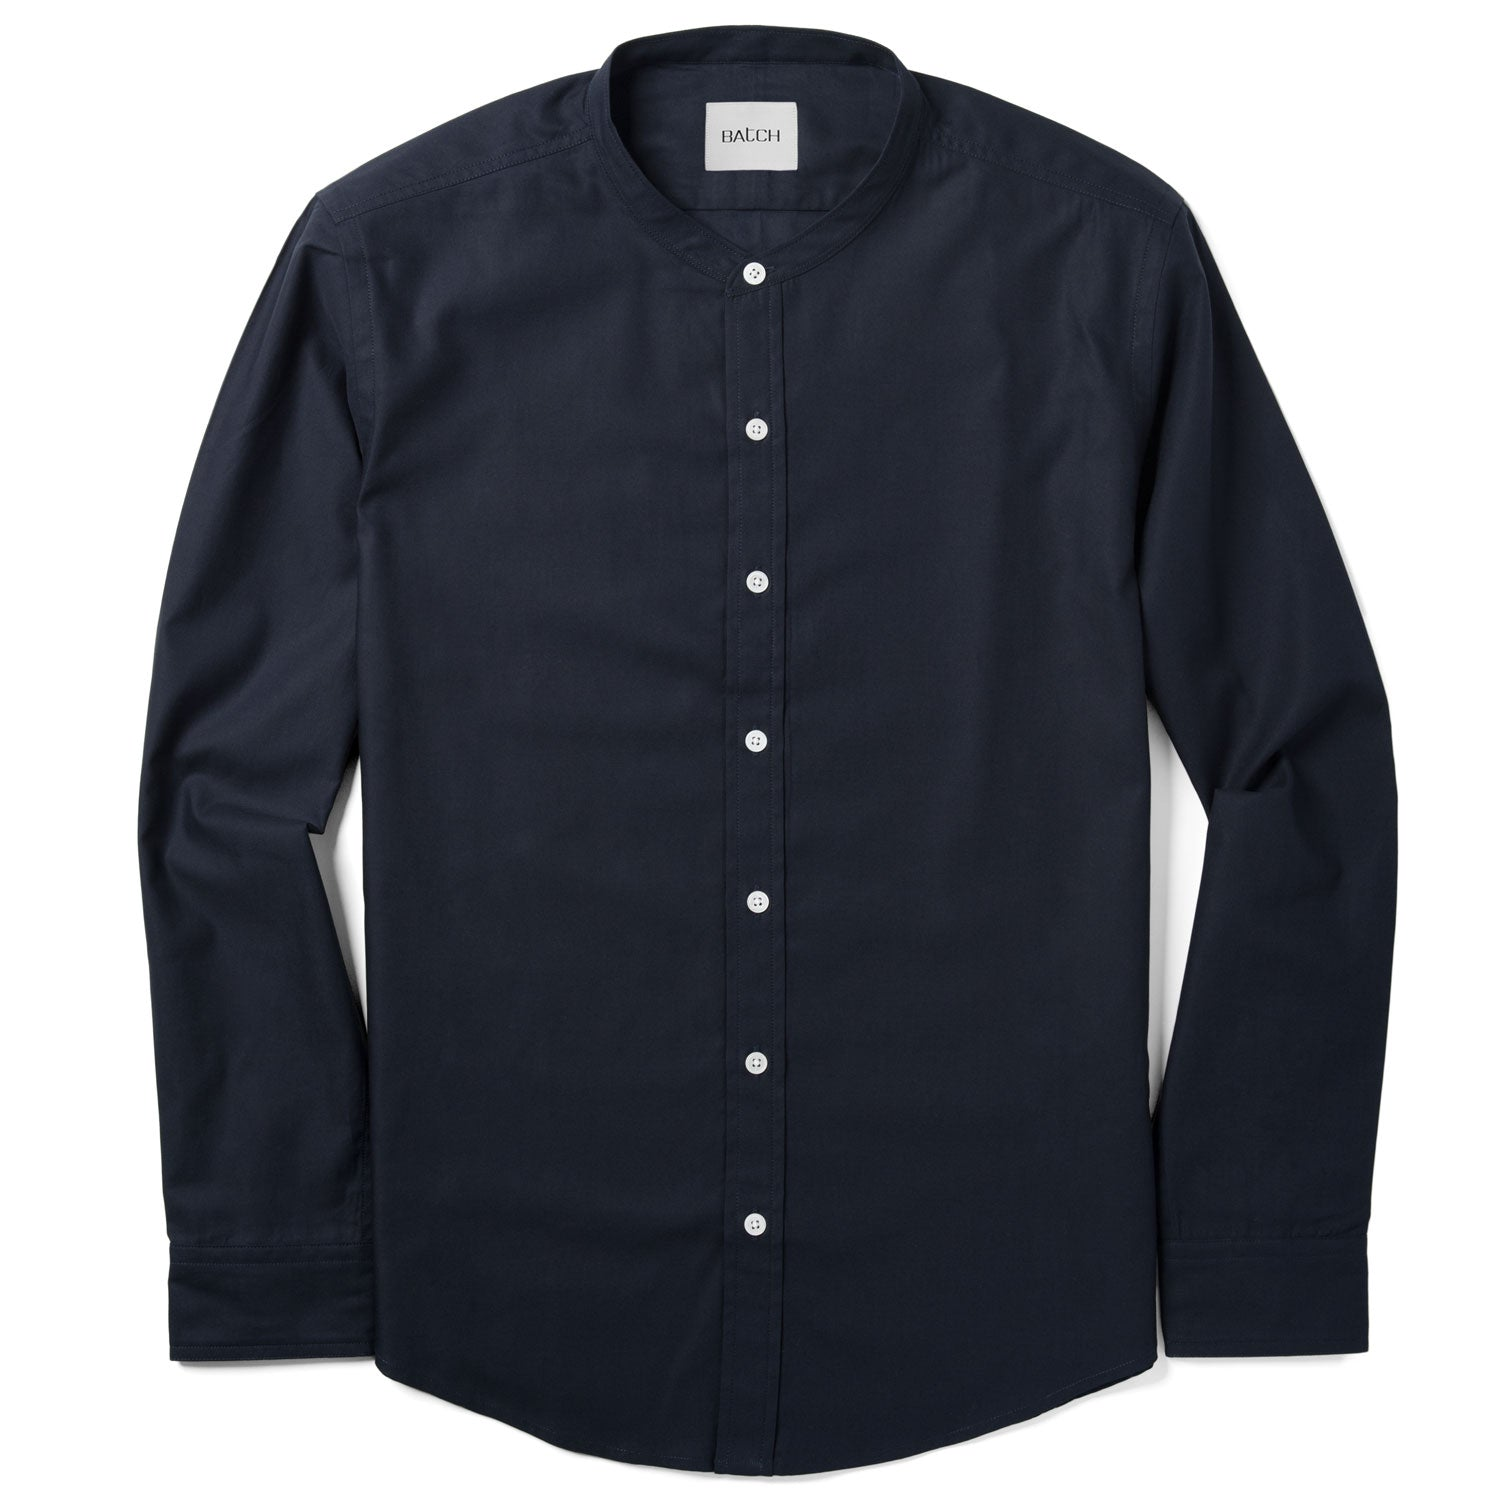 Essential Band-Collar Casual Shirt - WB Dark Navy Mercerized Cotton